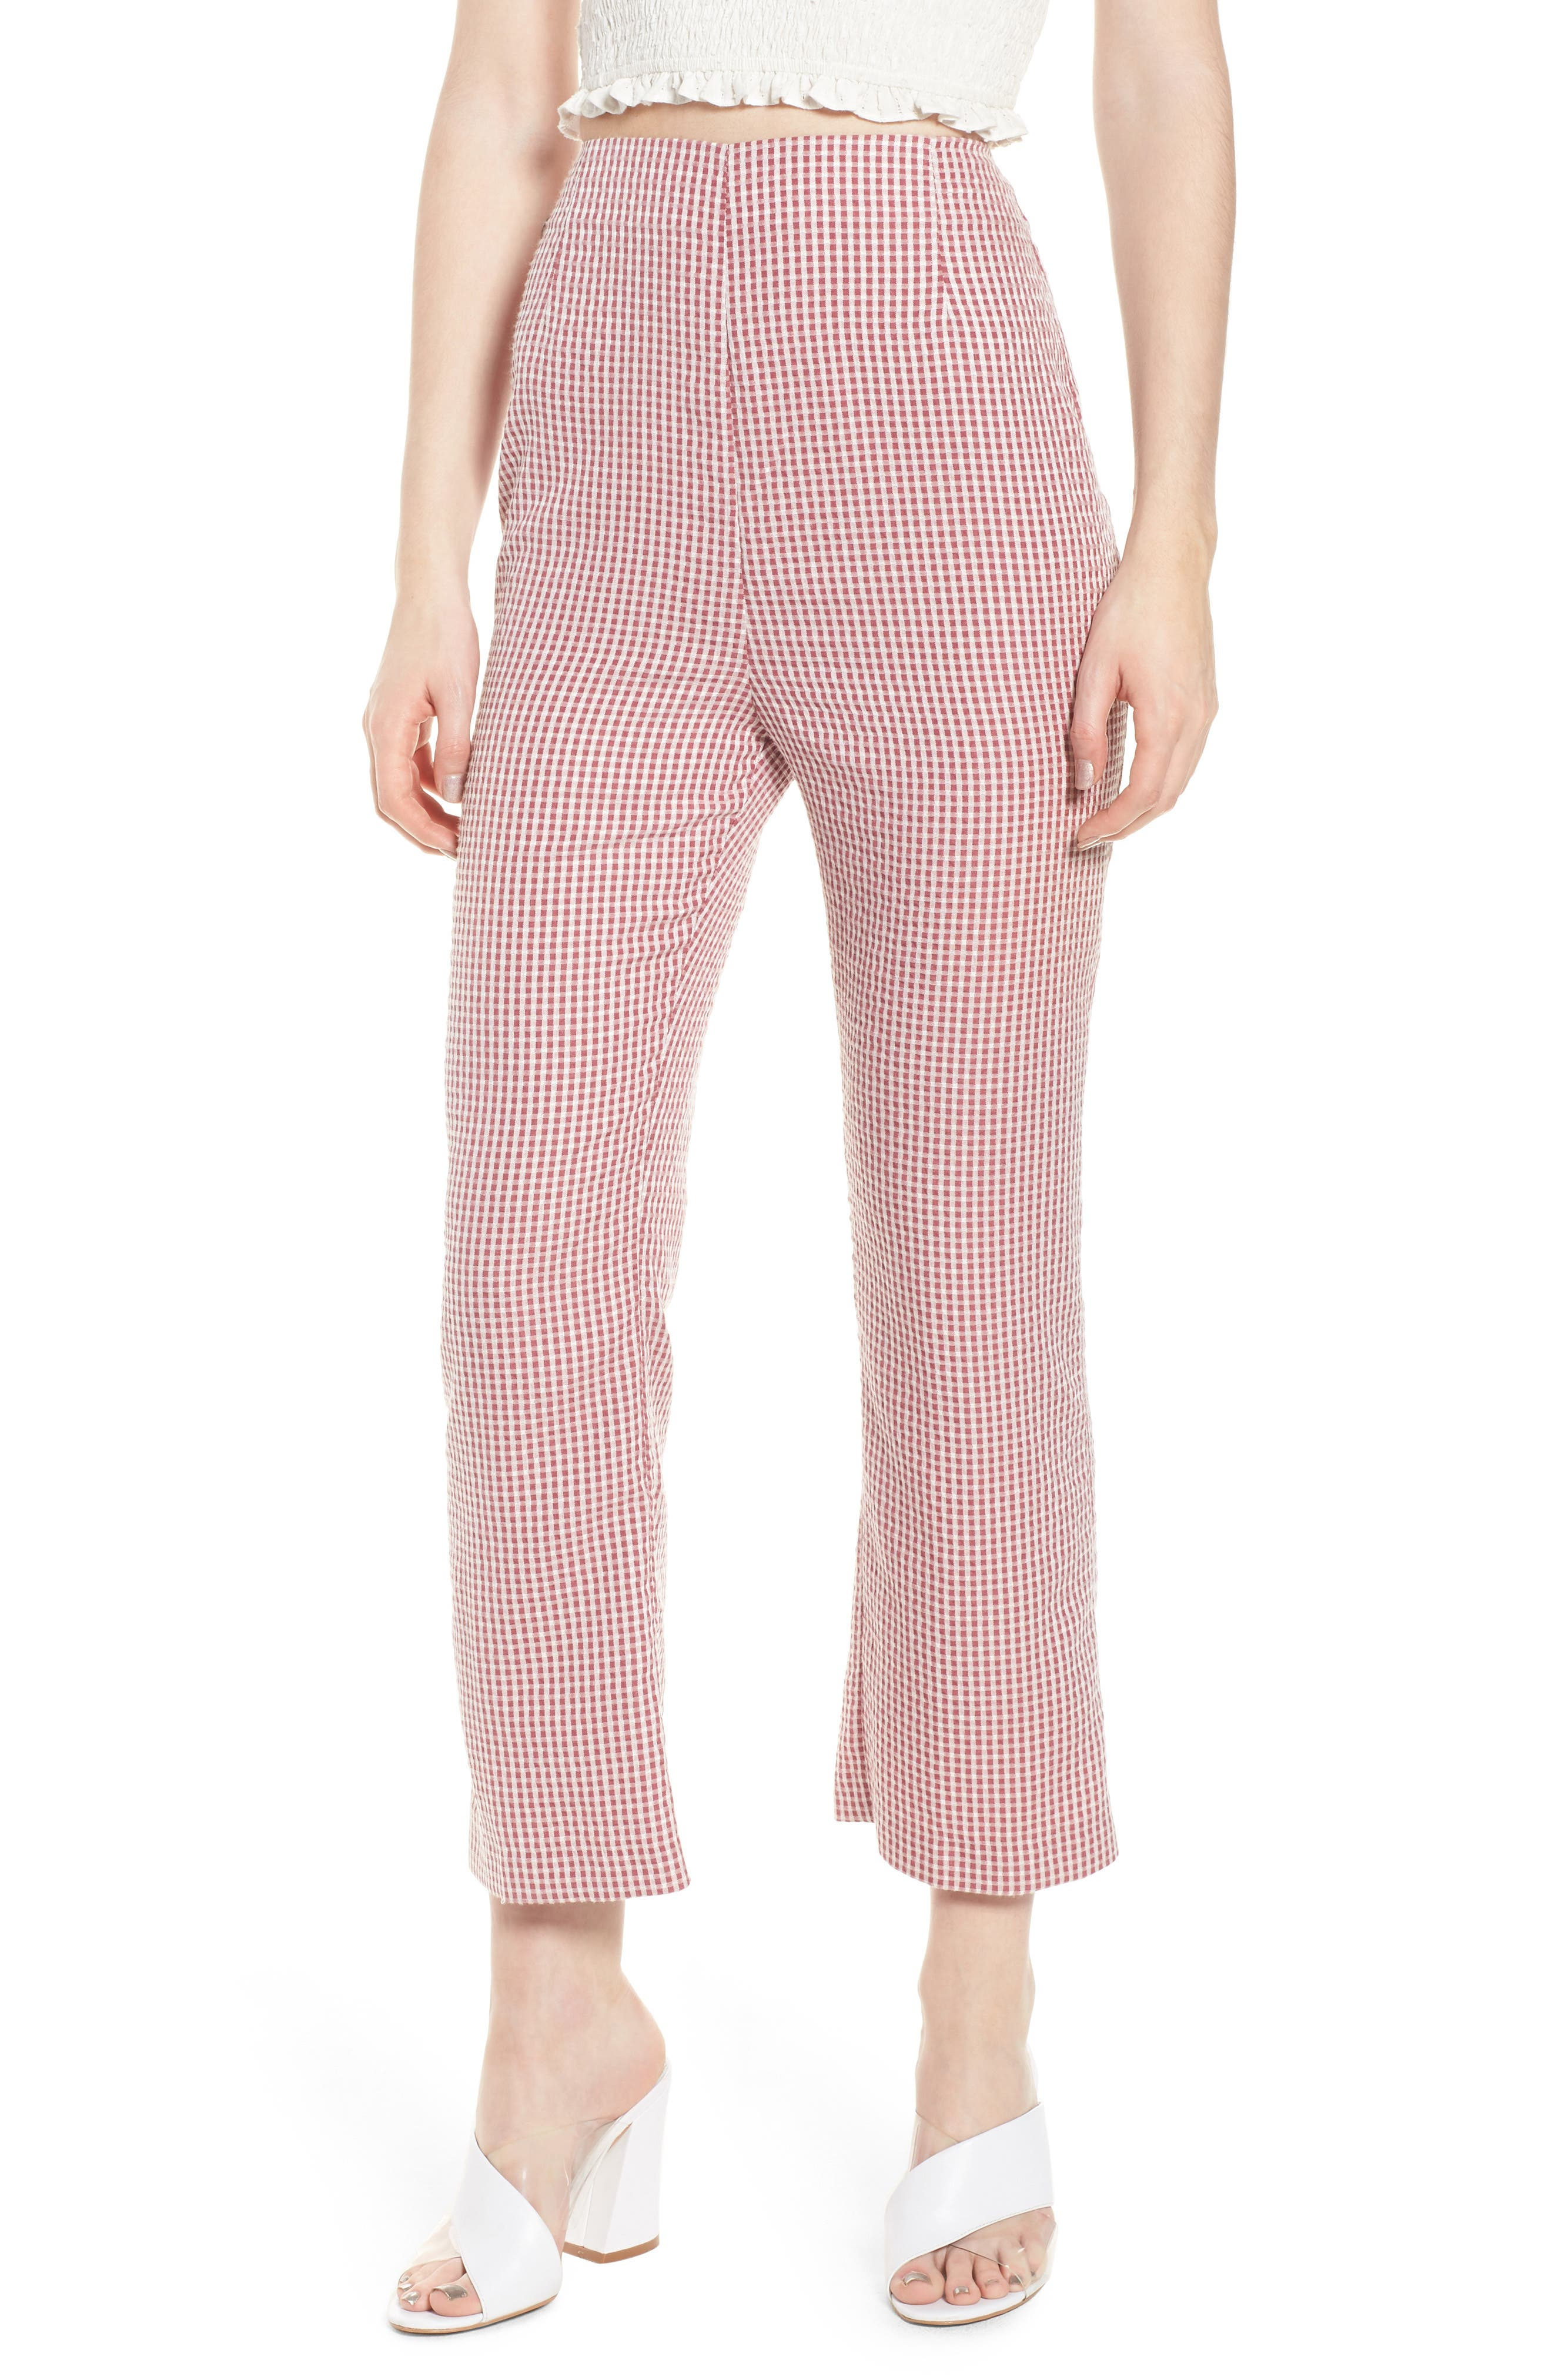 PISA HIGH WAIST CROP PANTS